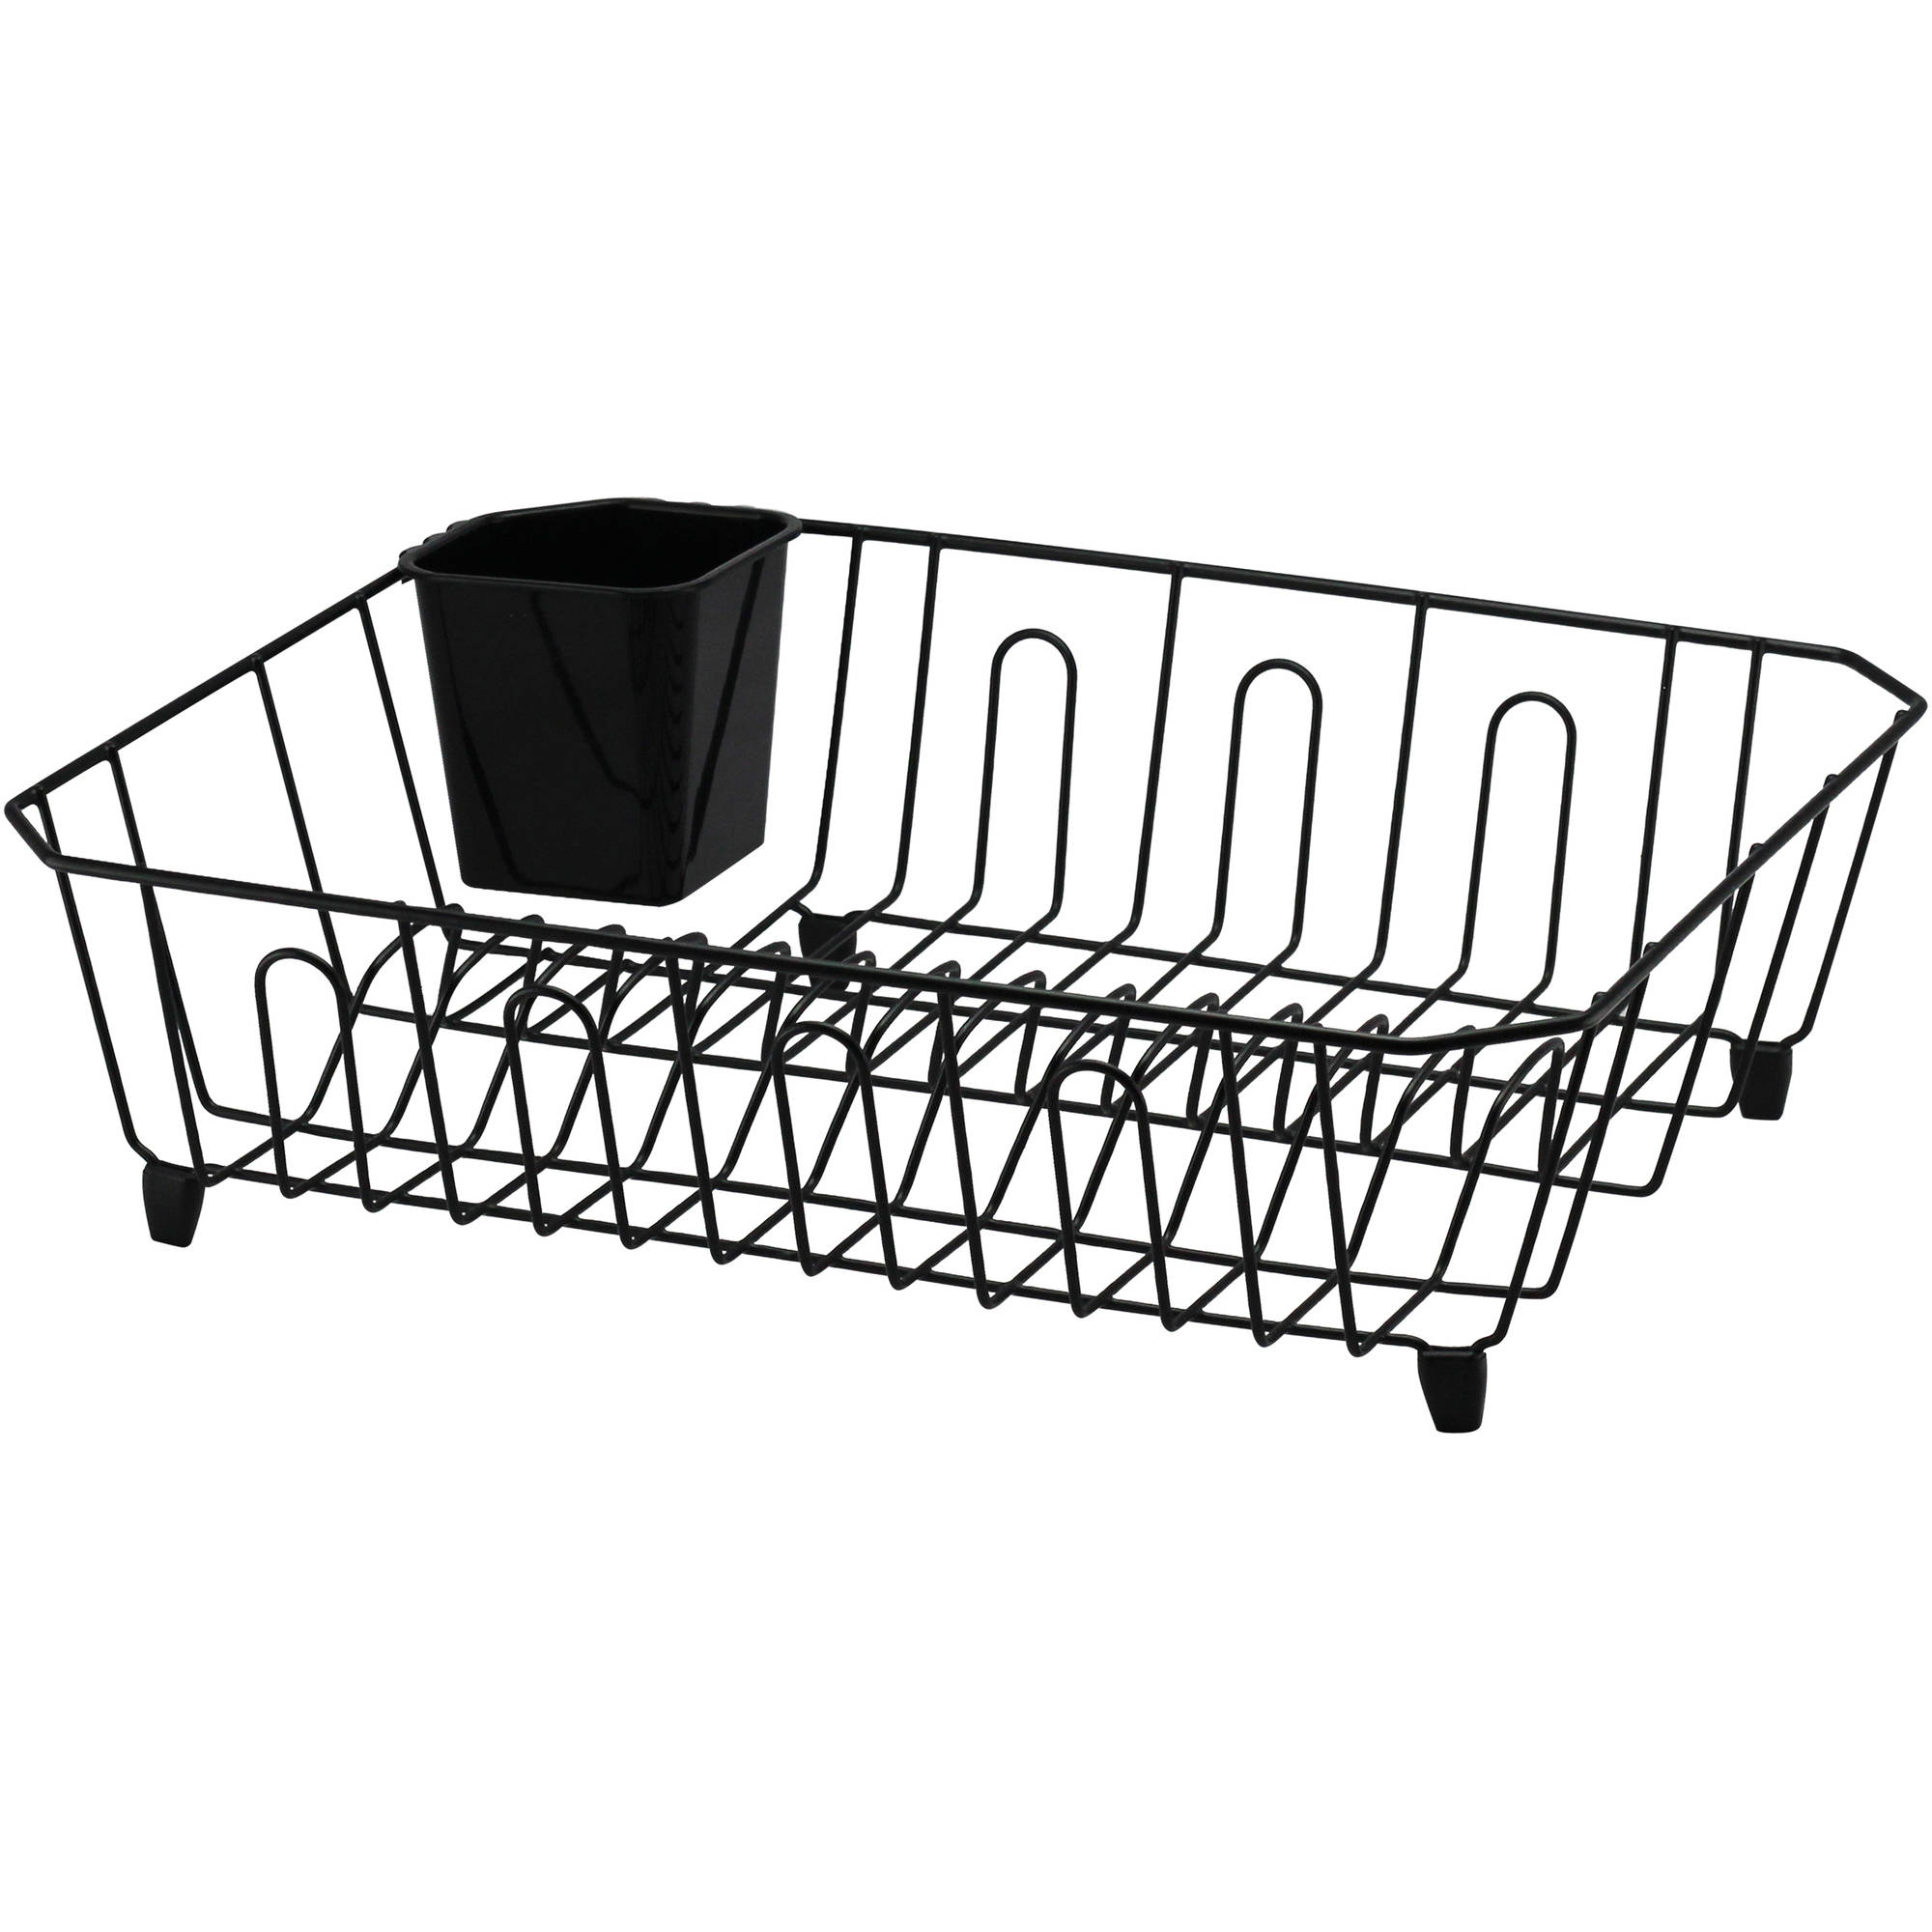 Real Home Large Dish Drainer, Black